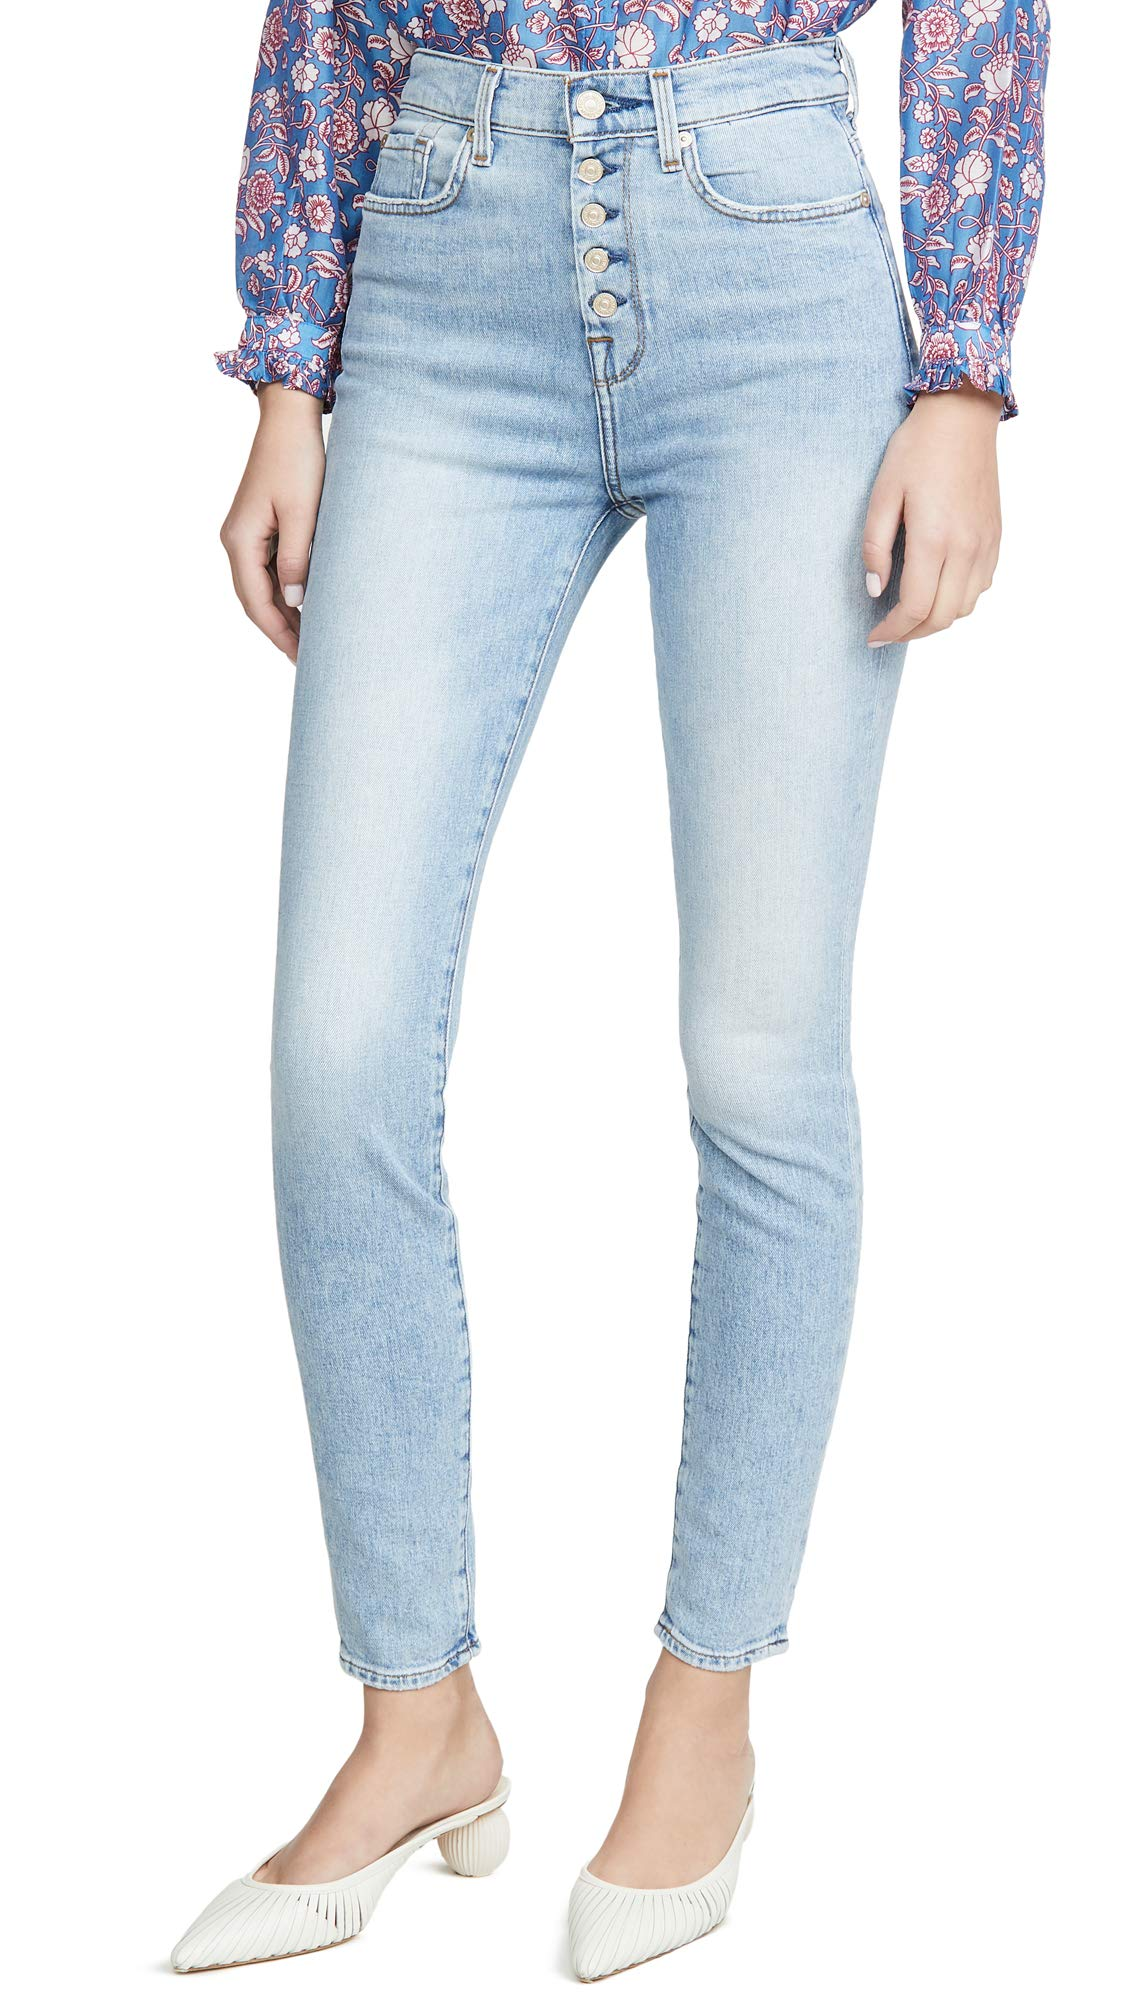 7 For All Mankind Women's High Rise Skinny Jeans